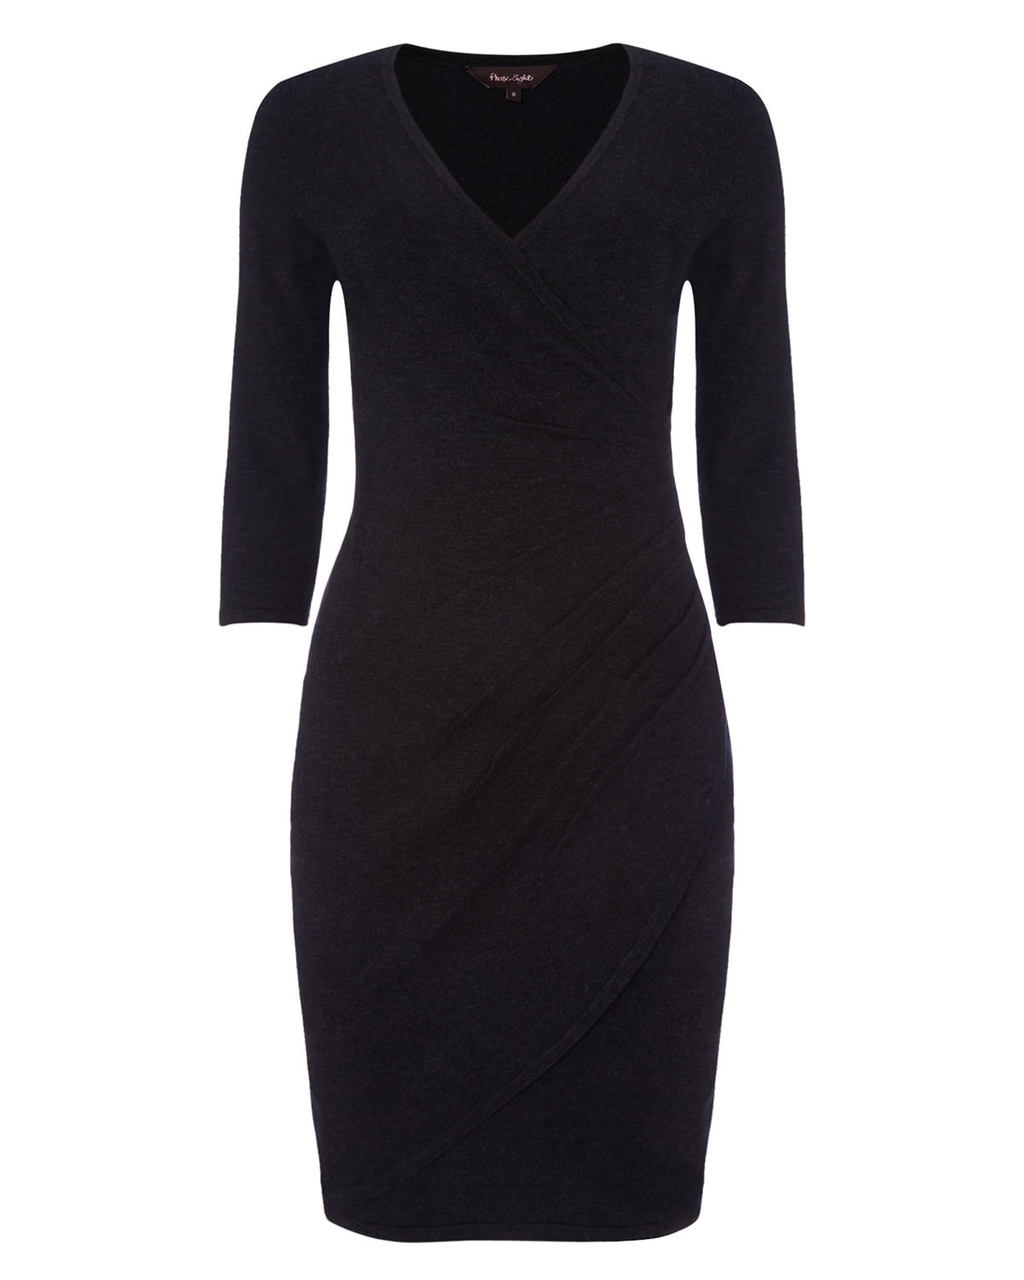 Maisie Wrap Dress - style: faux wrap/wrap; length: mid thigh; neckline: v-neck; pattern: plain; predominant colour: black; occasions: evening; fit: body skimming; fibres: viscose/rayon - stretch; sleeve length: 3/4 length; sleeve style: standard; pattern type: fabric; texture group: jersey - stretchy/drapey; season: a/w 2015; wardrobe: event